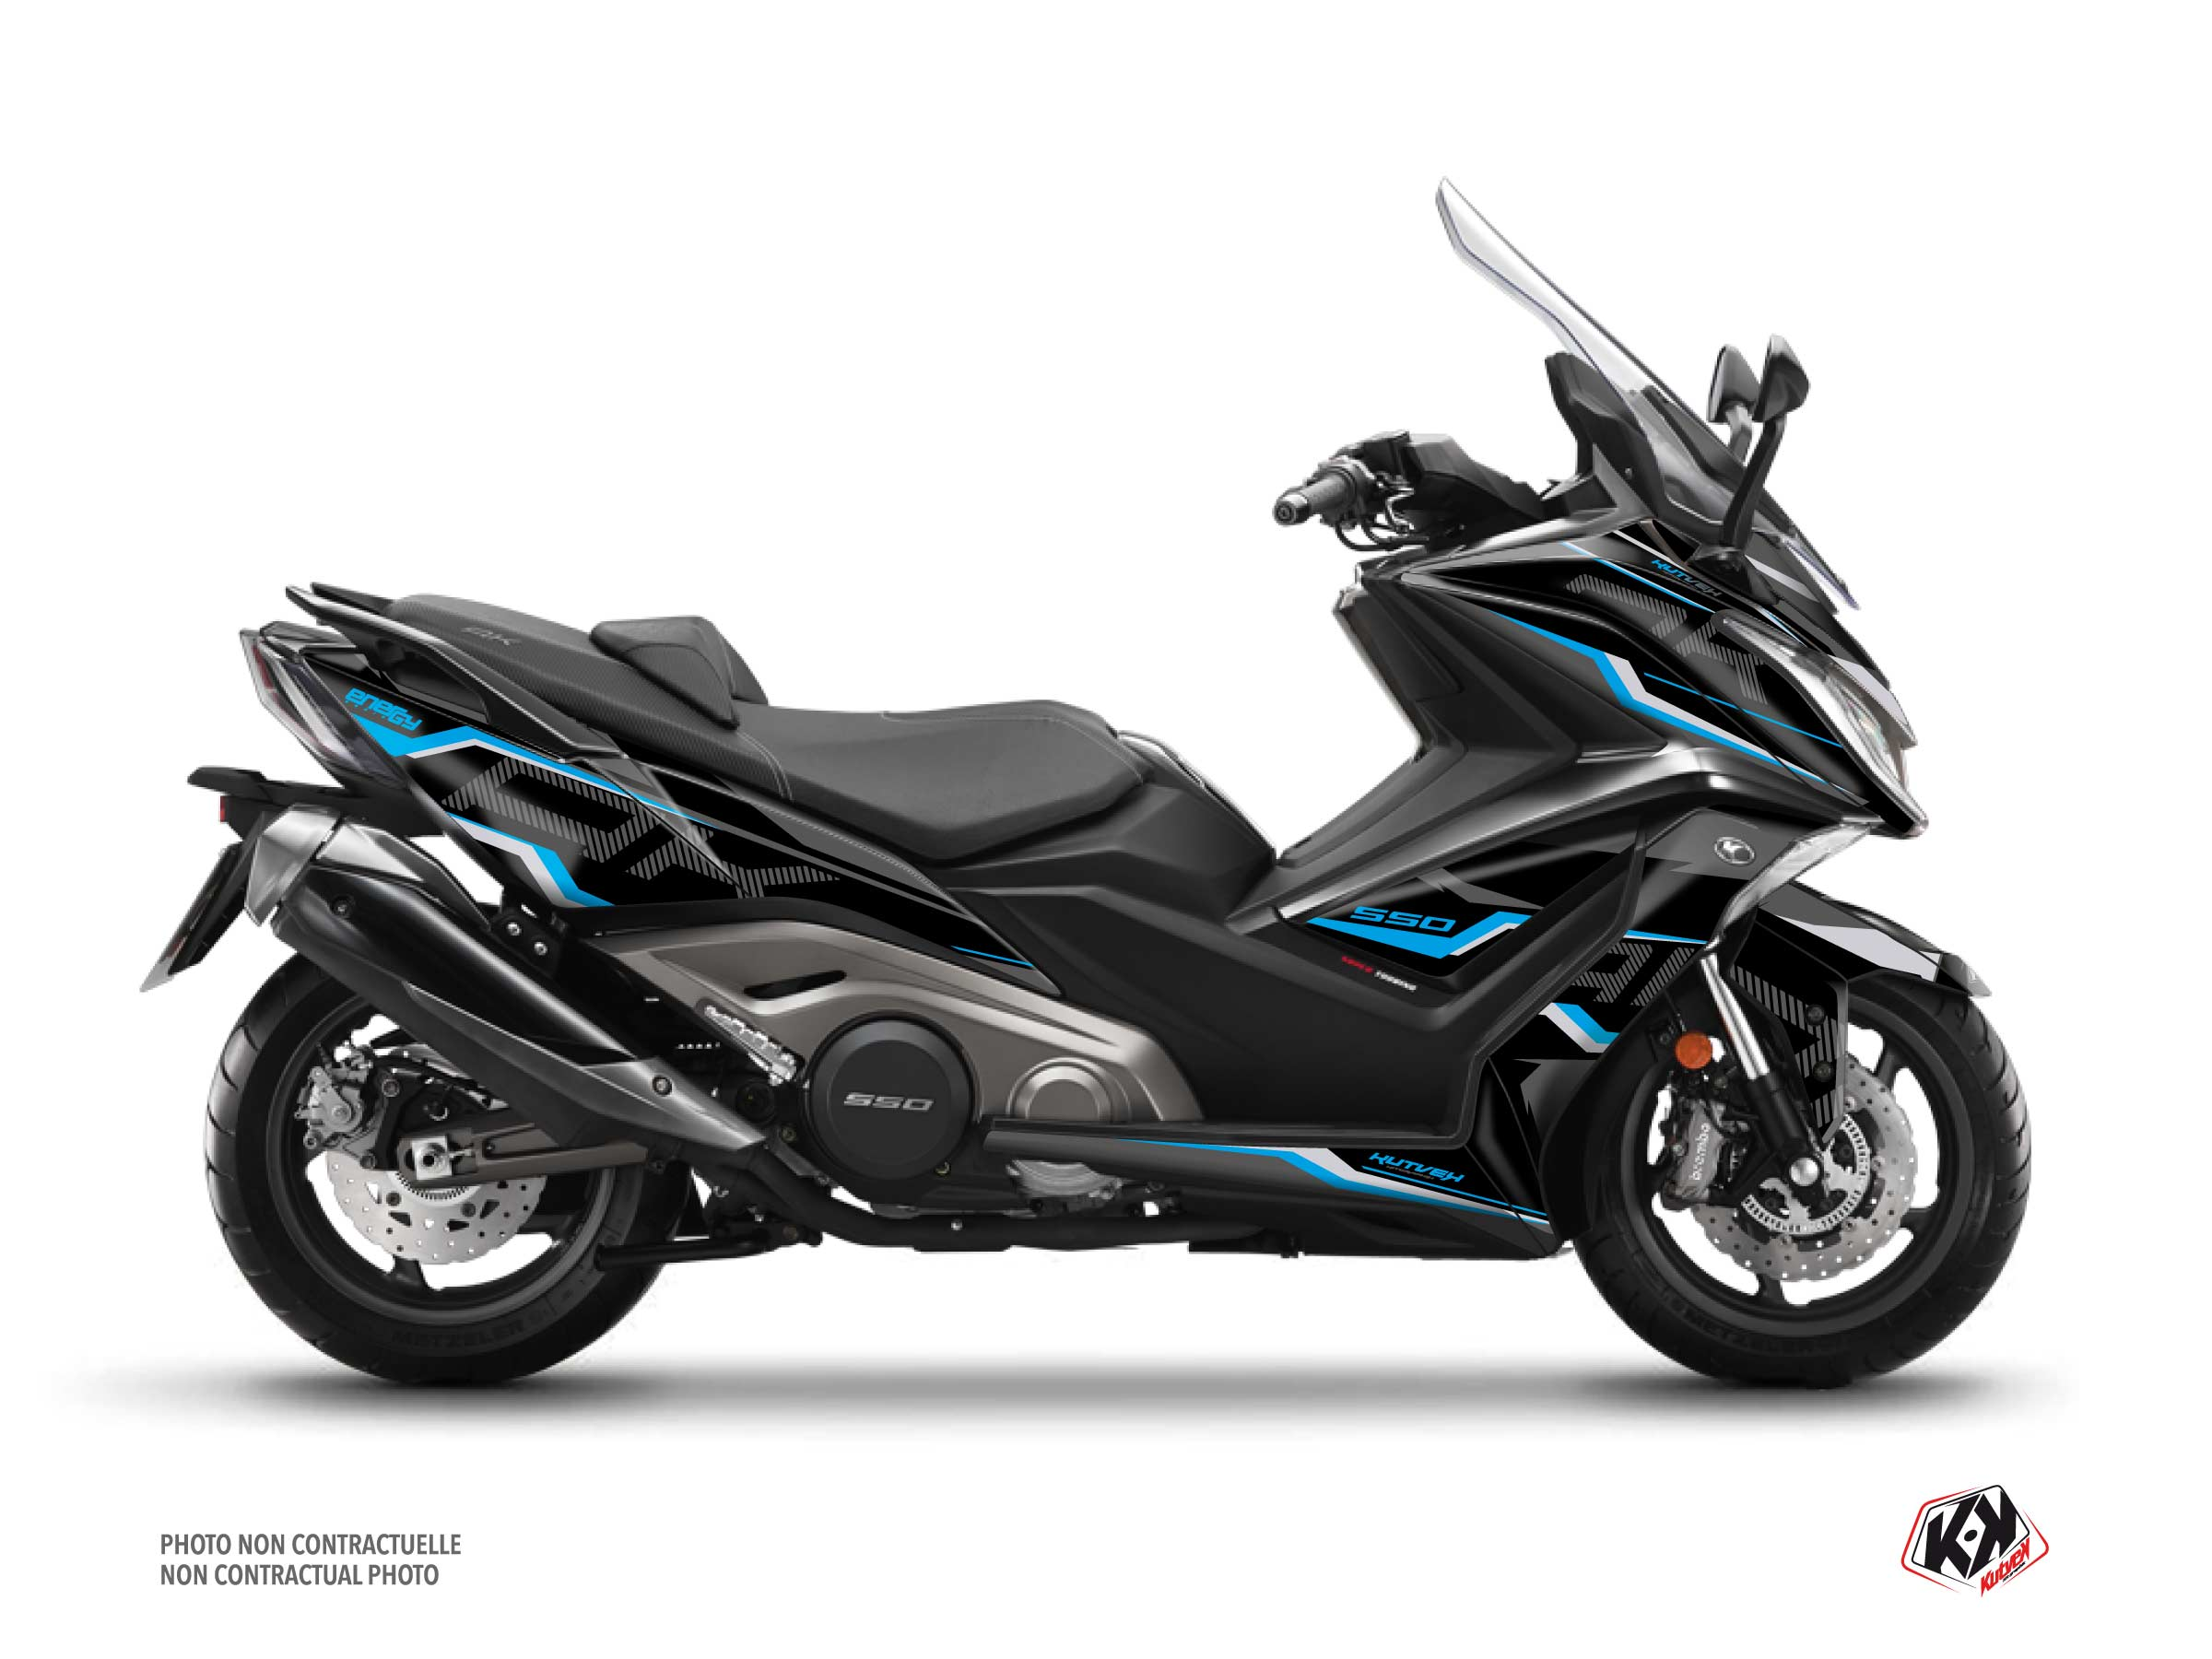 Kymco AK 550 Maxiscooter Energy Graphic Kit Black Blue